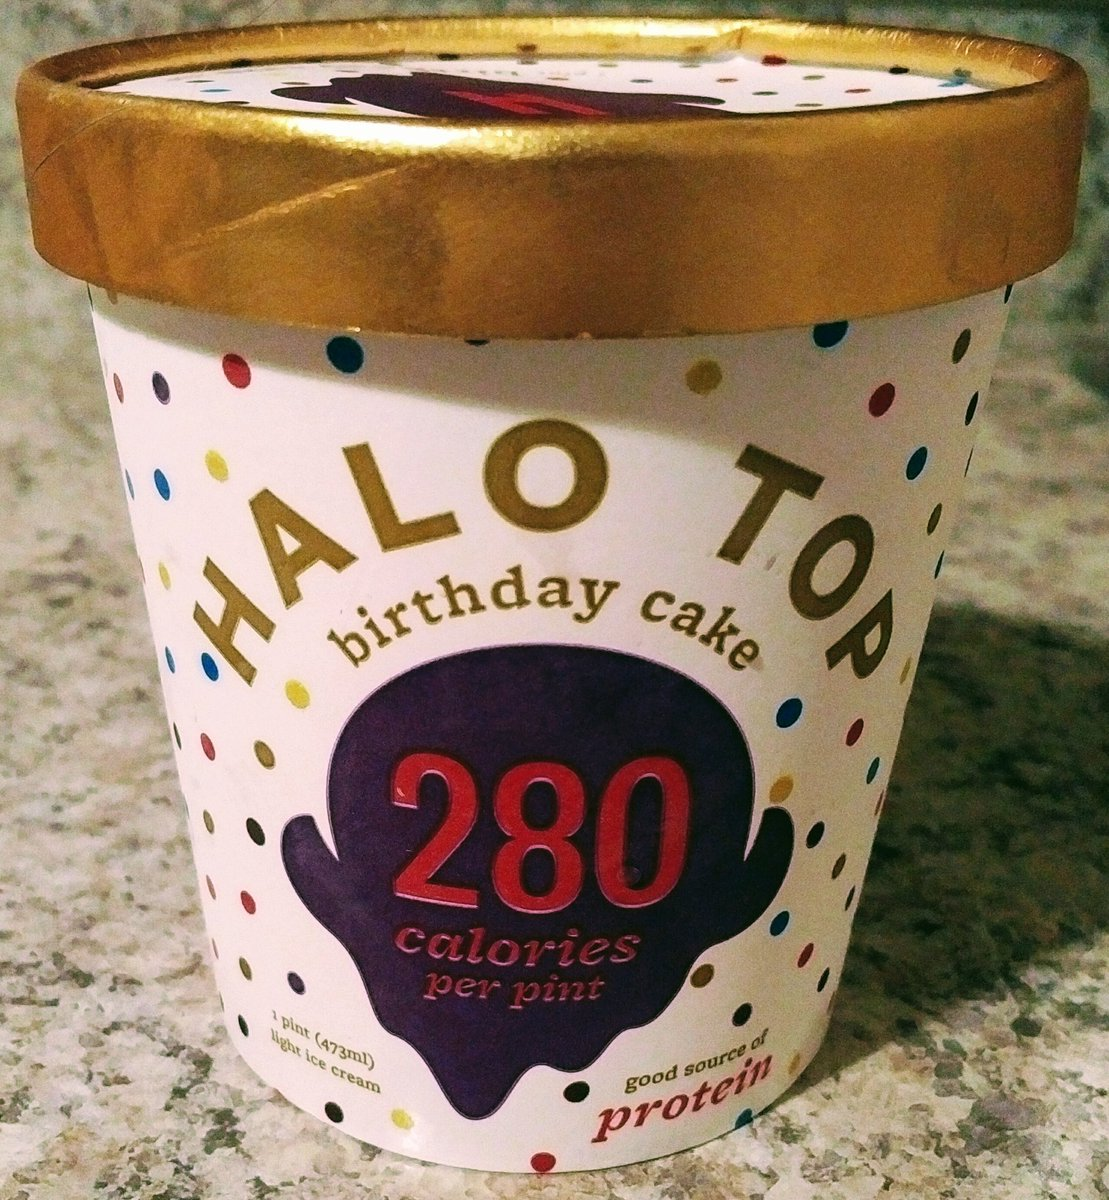 Halo Top On Twitter Its Like Your Birthday Every Time You Eat It